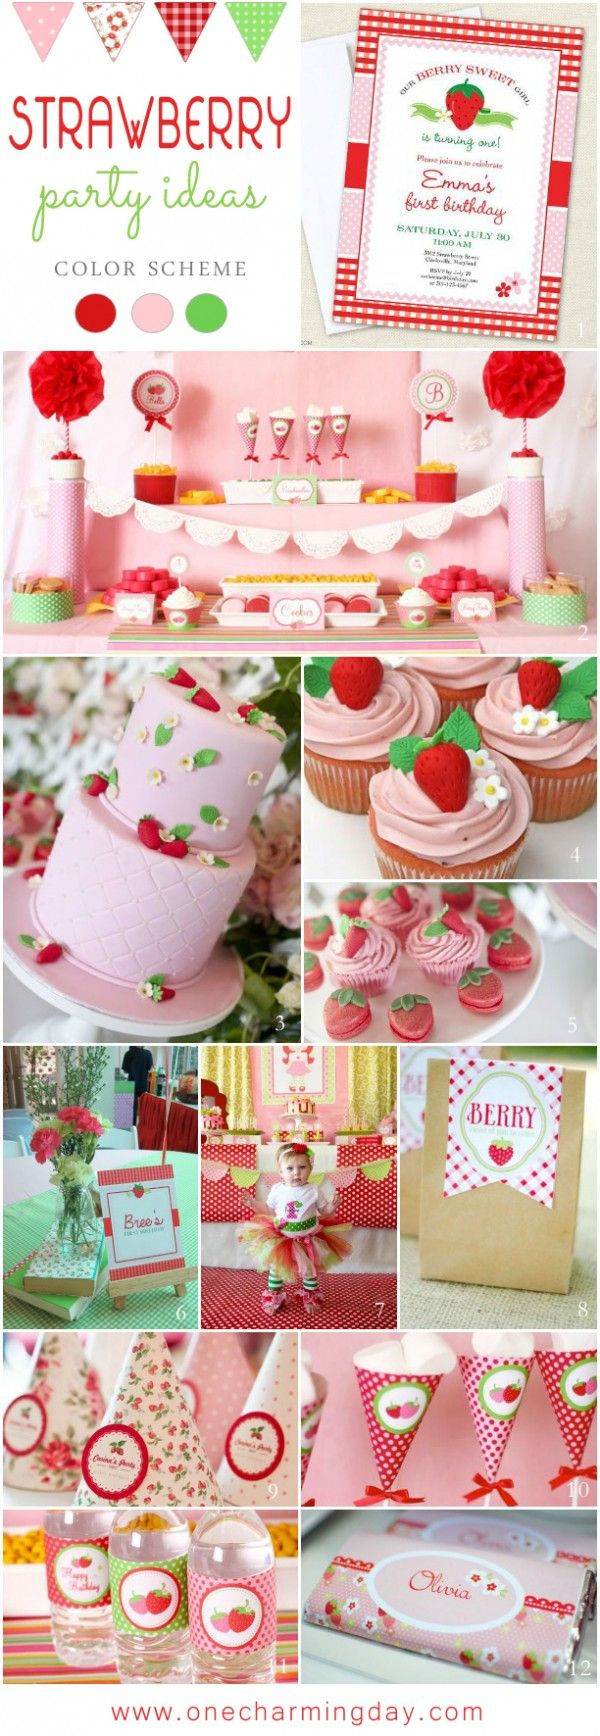 Strawberry-Party-Ideas-600x1736